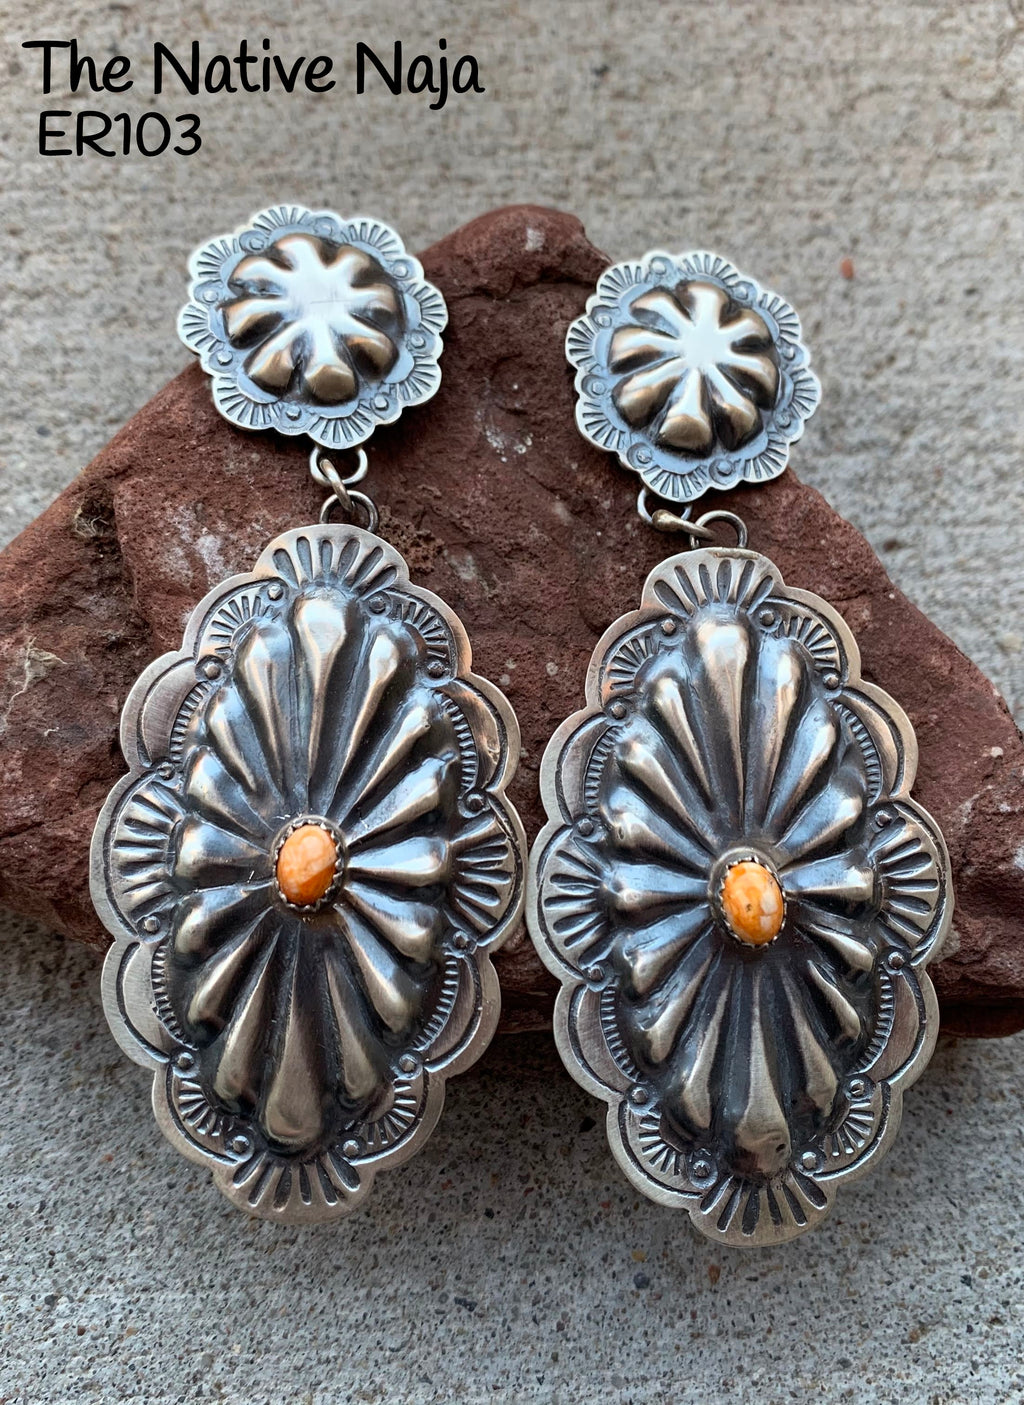 Large Stunning Navajo Genuine Oxidized Sterling Silver & Spiny Oyster Concho Post Earrings ER103